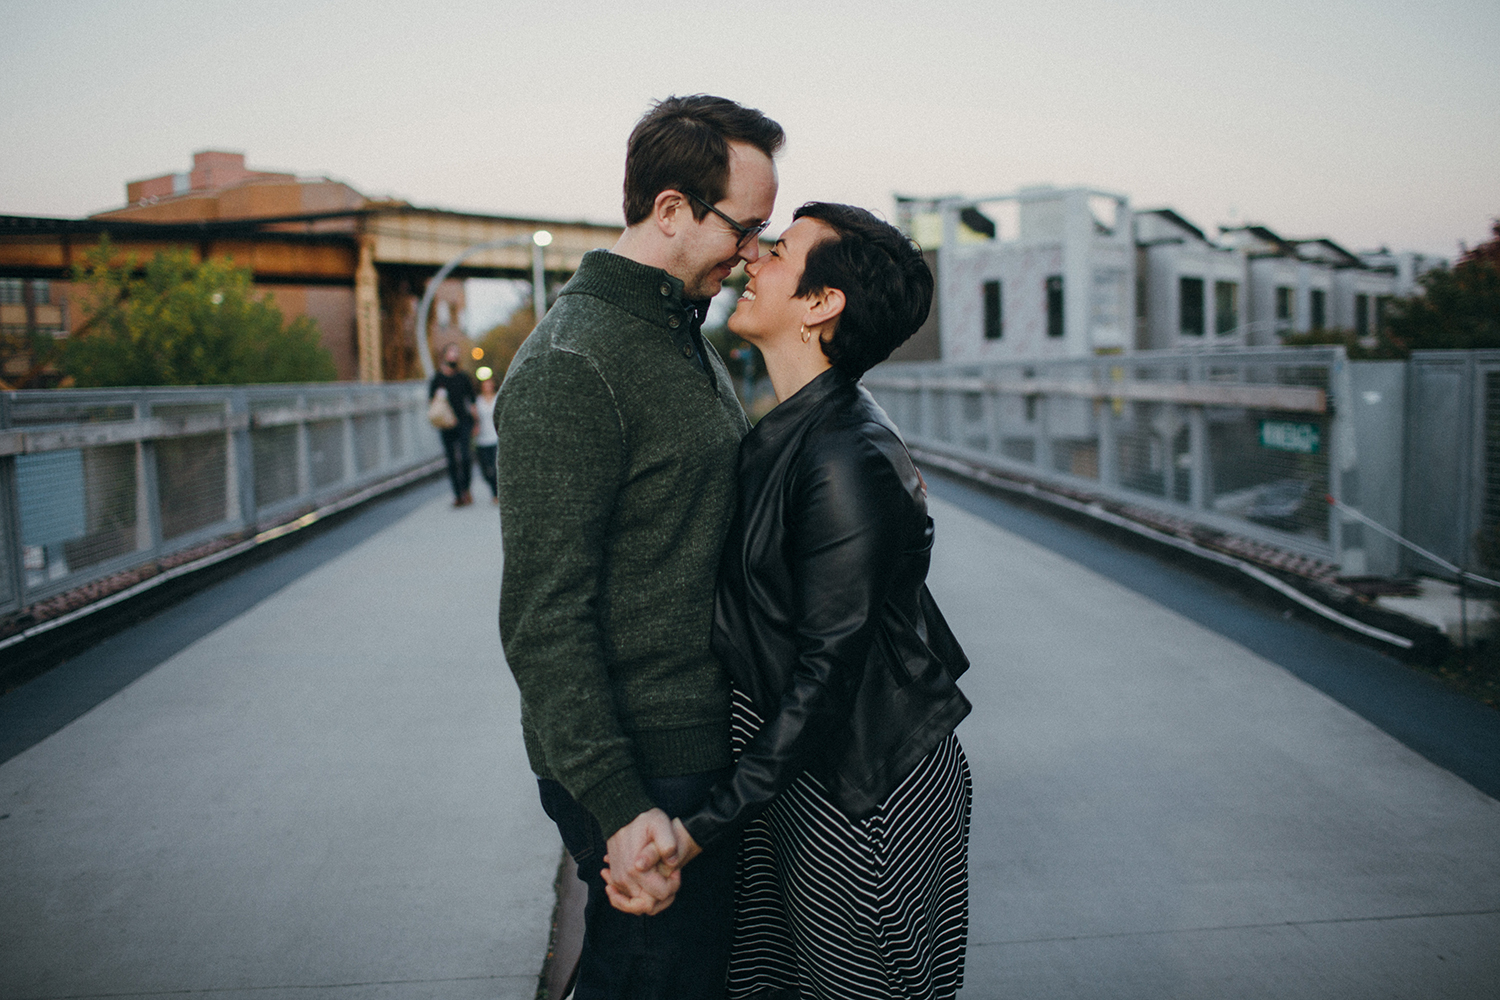 chicago_engagement_photos_logan_square_west_side_elearnor_mark (31 of 32).jpg